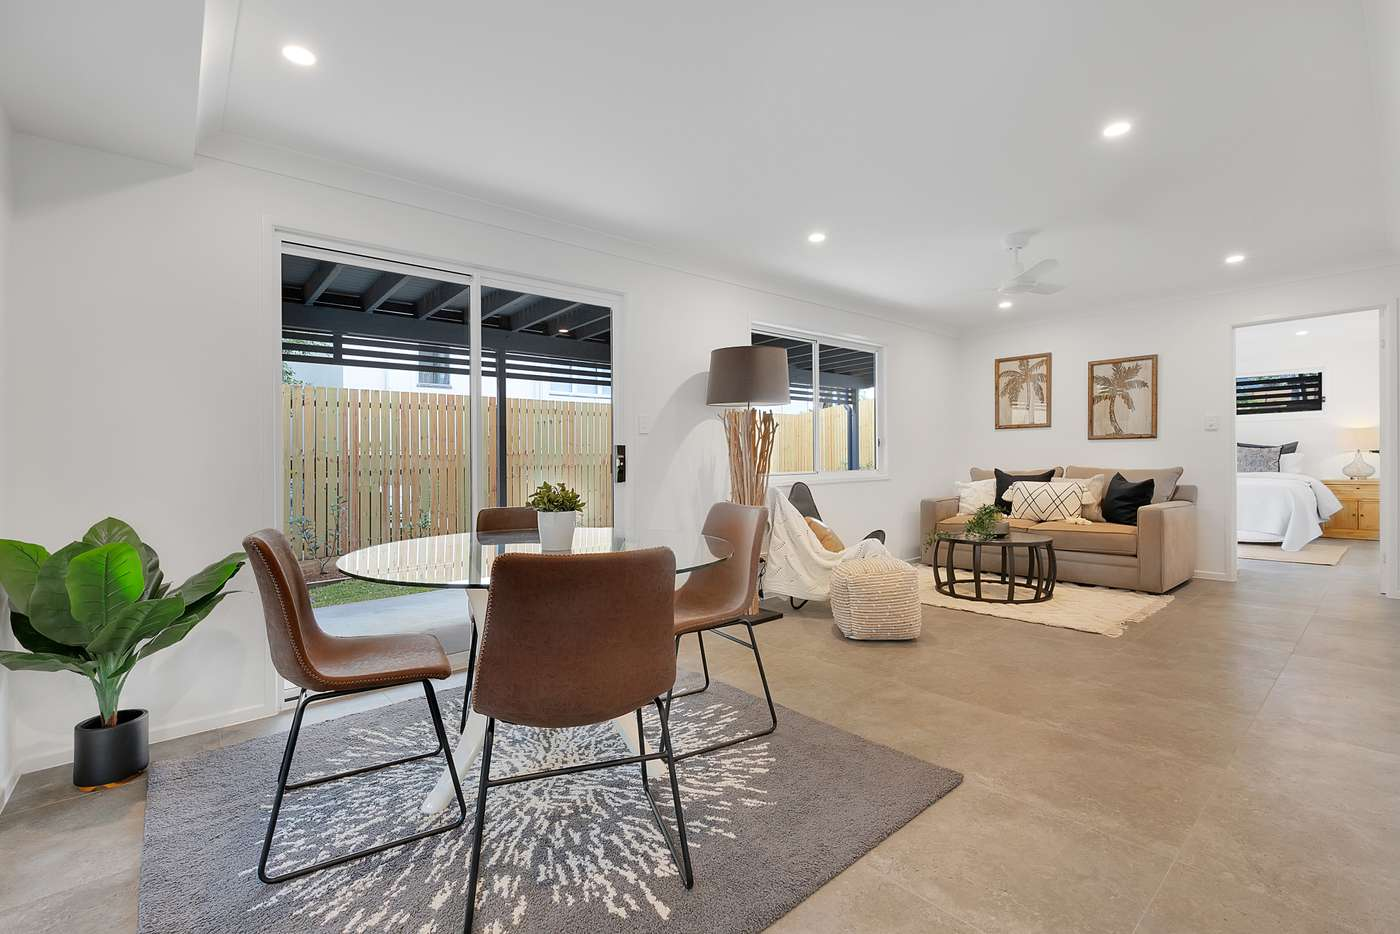 Seventh view of Homely house listing, 12 Gymea Street, The Gap QLD 4061